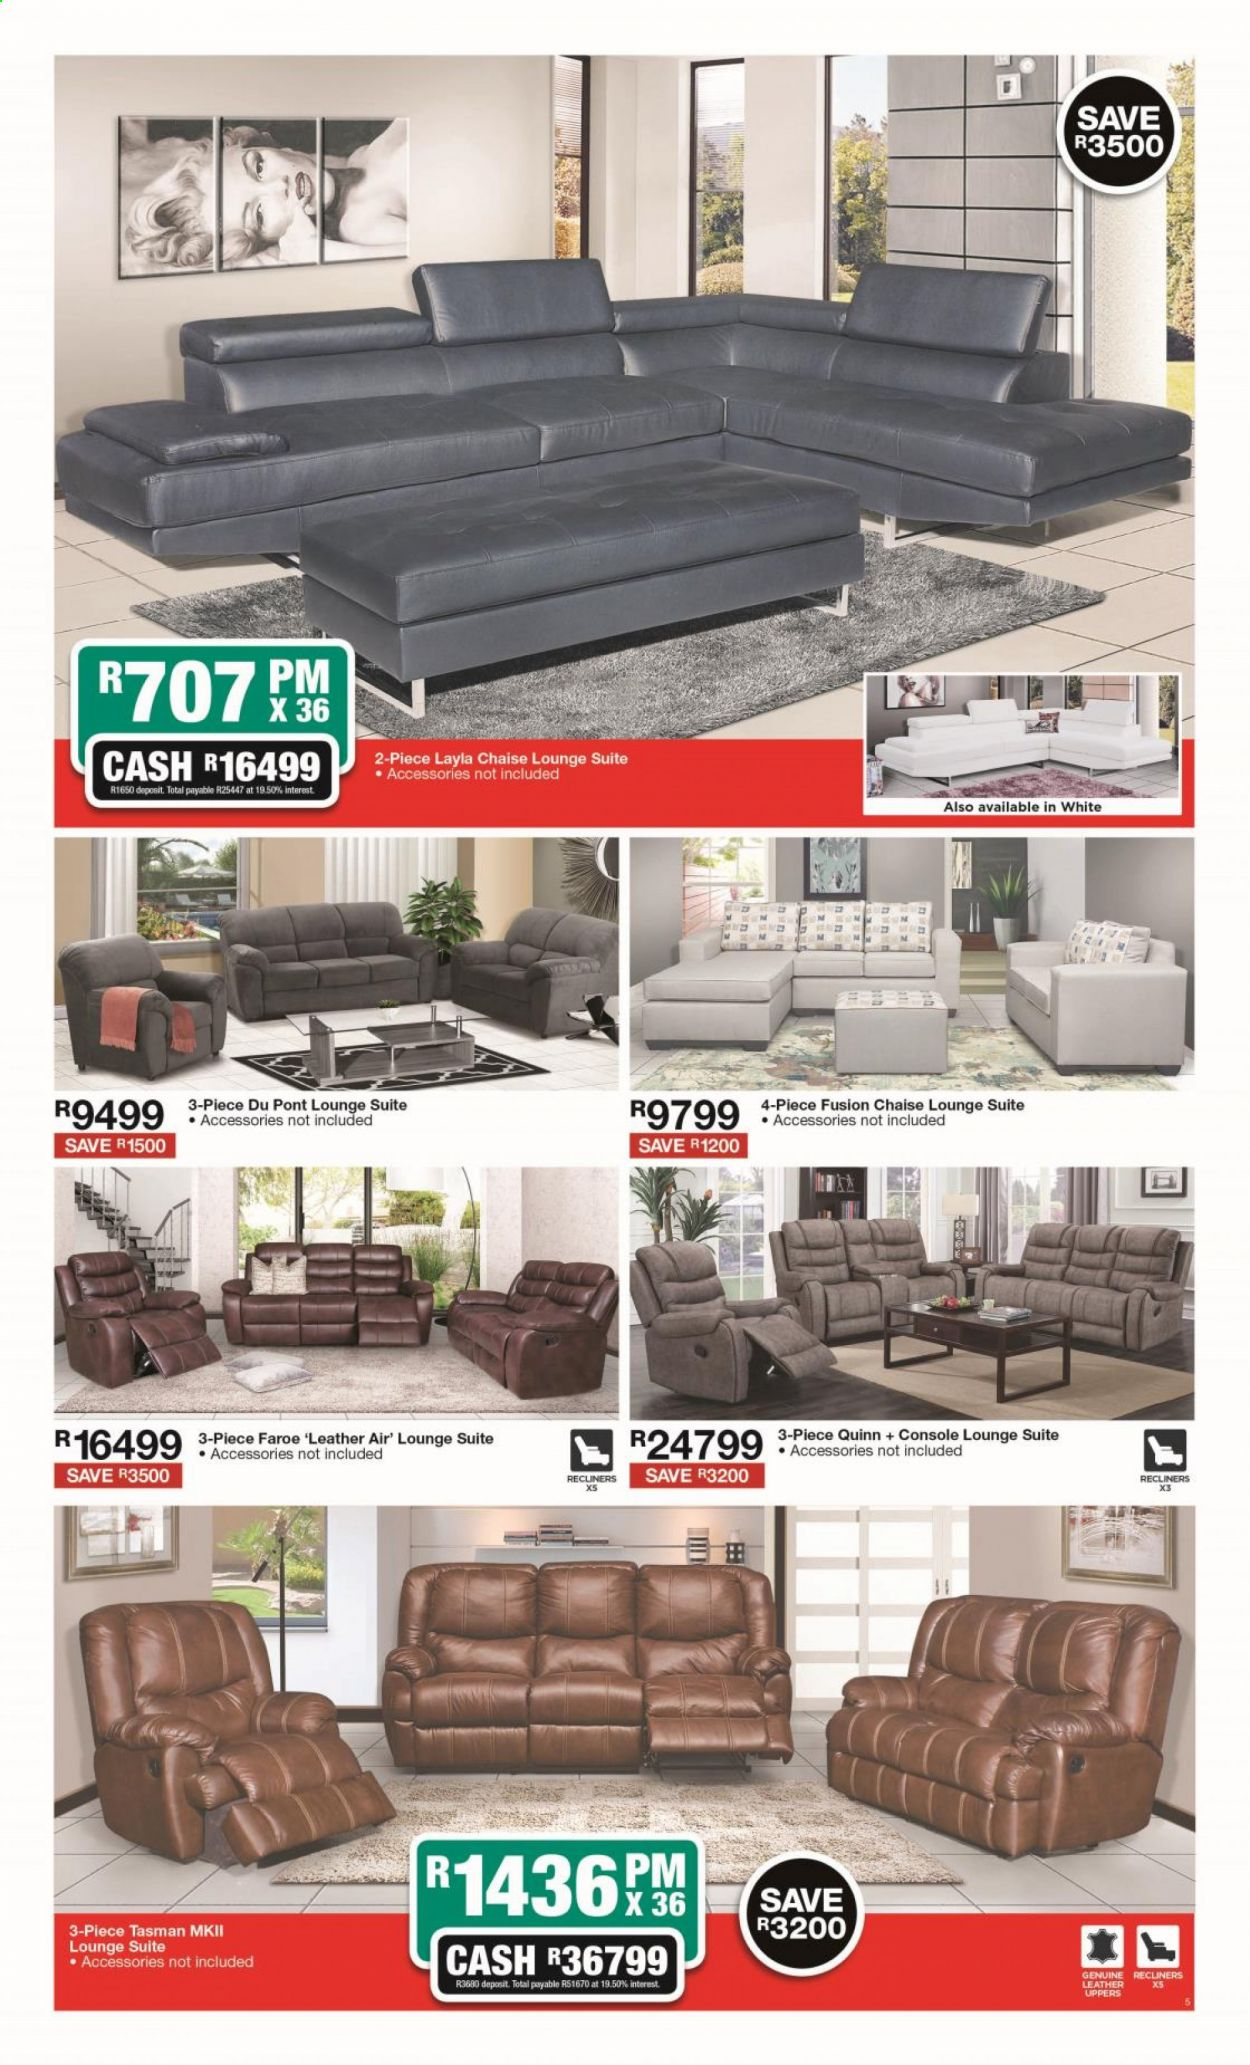 House & Home catalogue  - 08.26.2020 - 09.06.2020. Page 5.